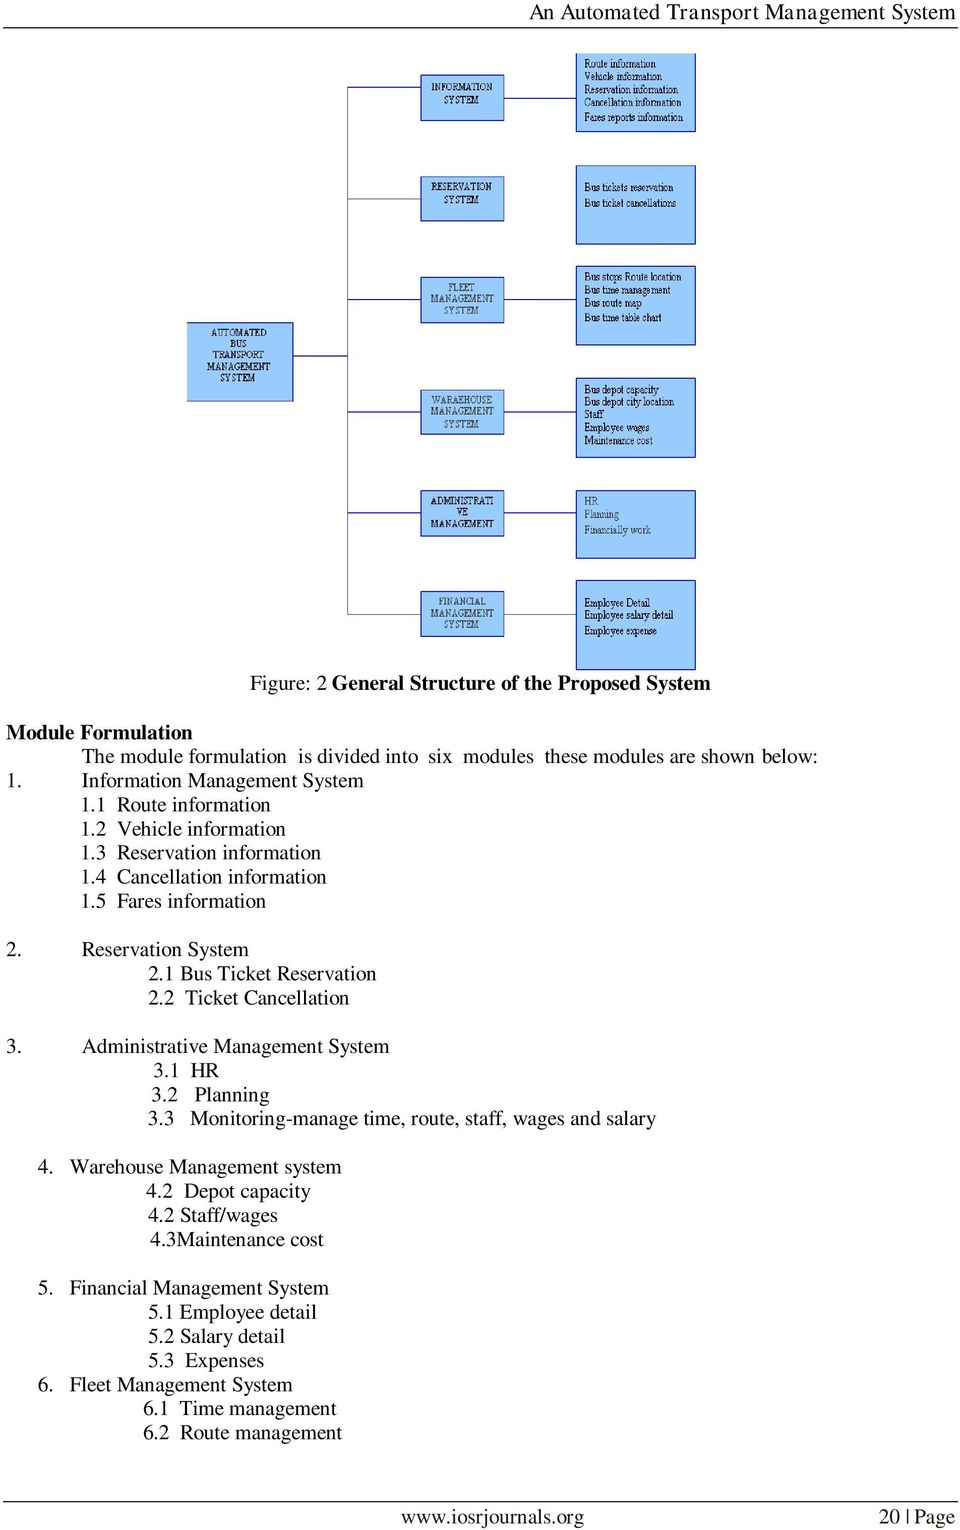 An Automated Transport Management System Pdf Free Download